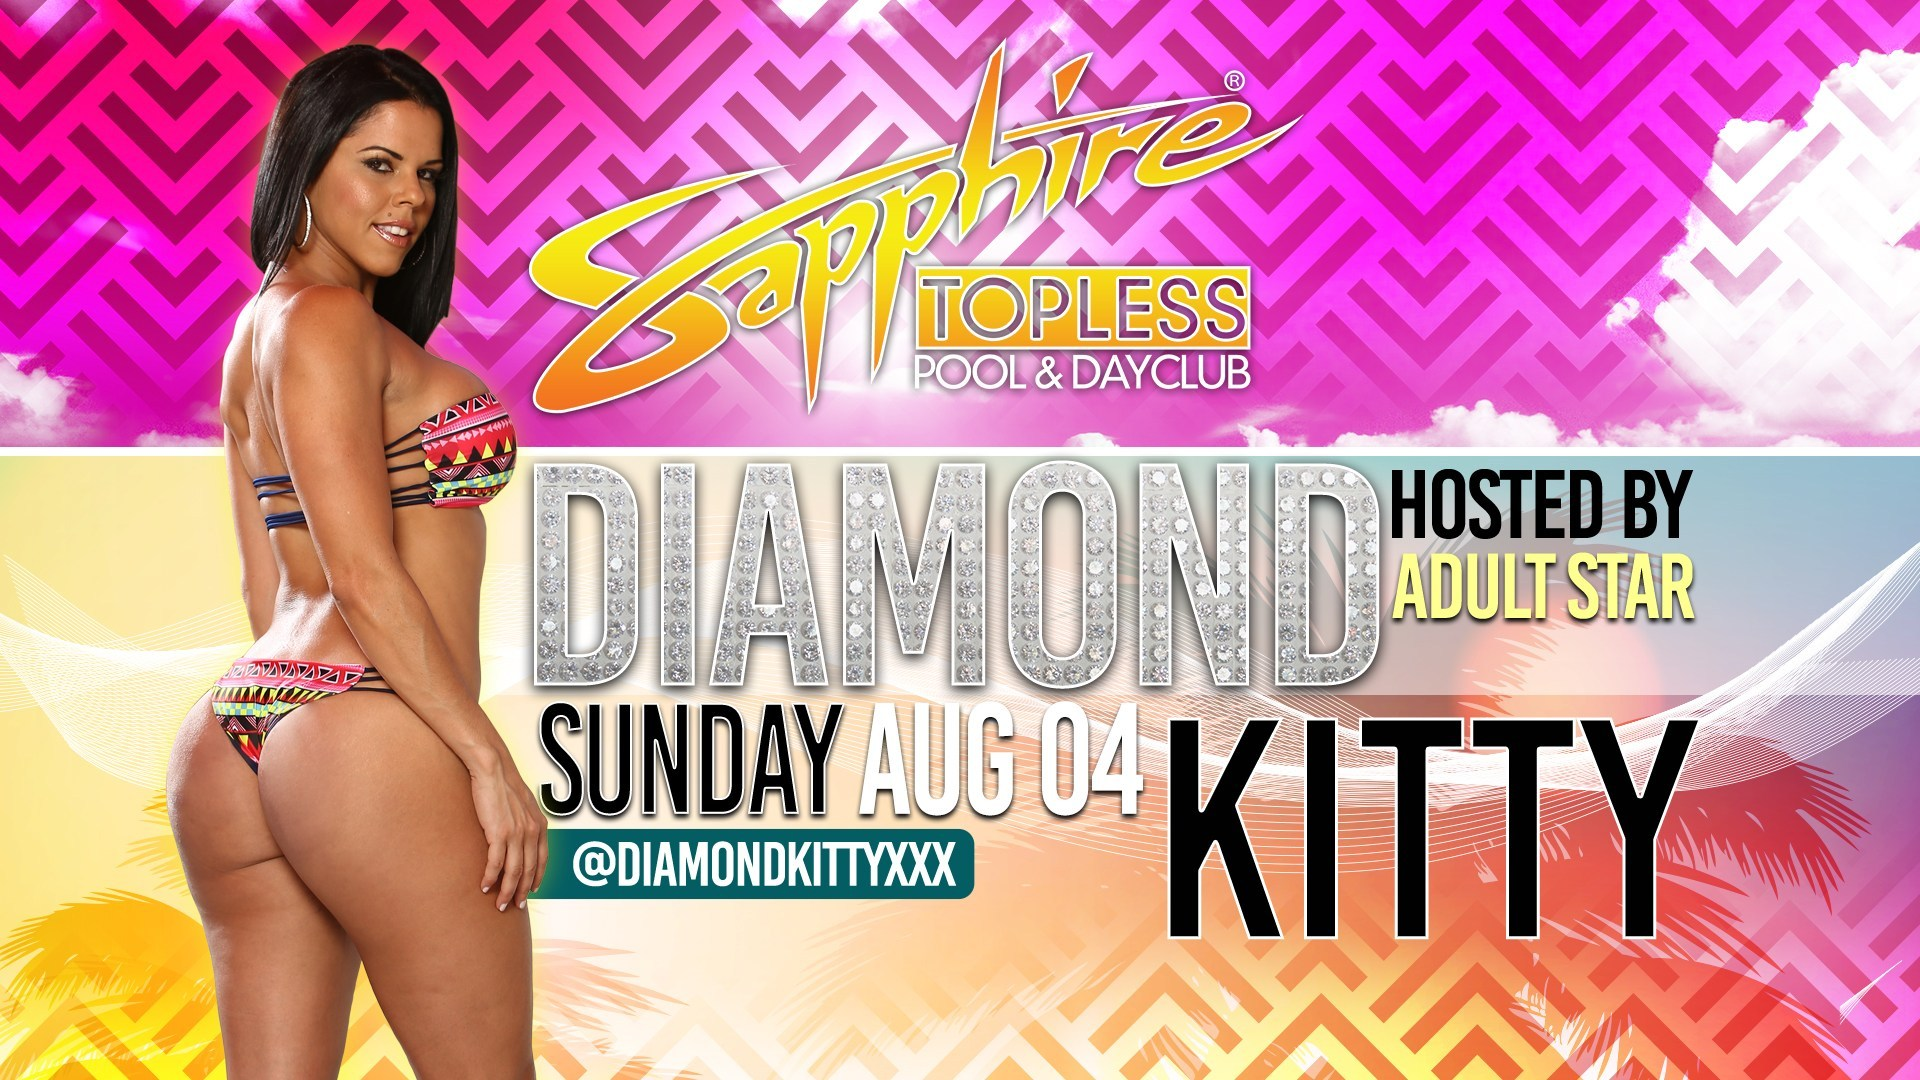 Hosted by Adult Star Diamond Kitty